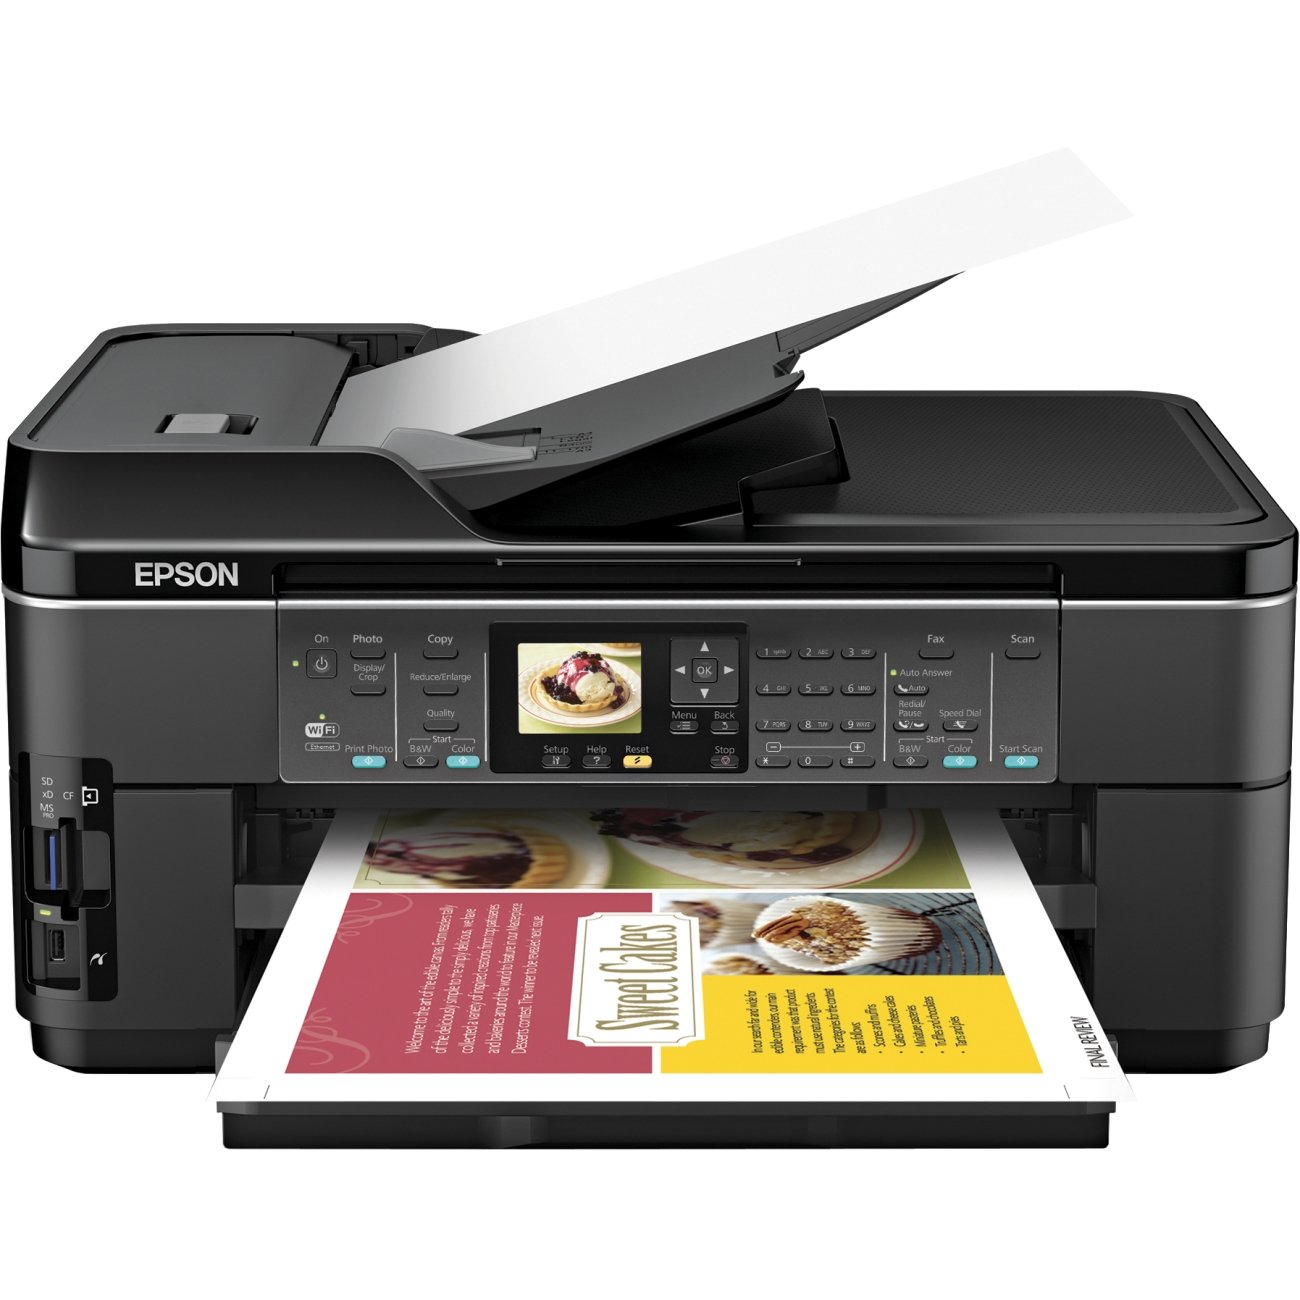 Amazon.com: Epson WorkForce WF-7510 inalámbrica todo en uno ...